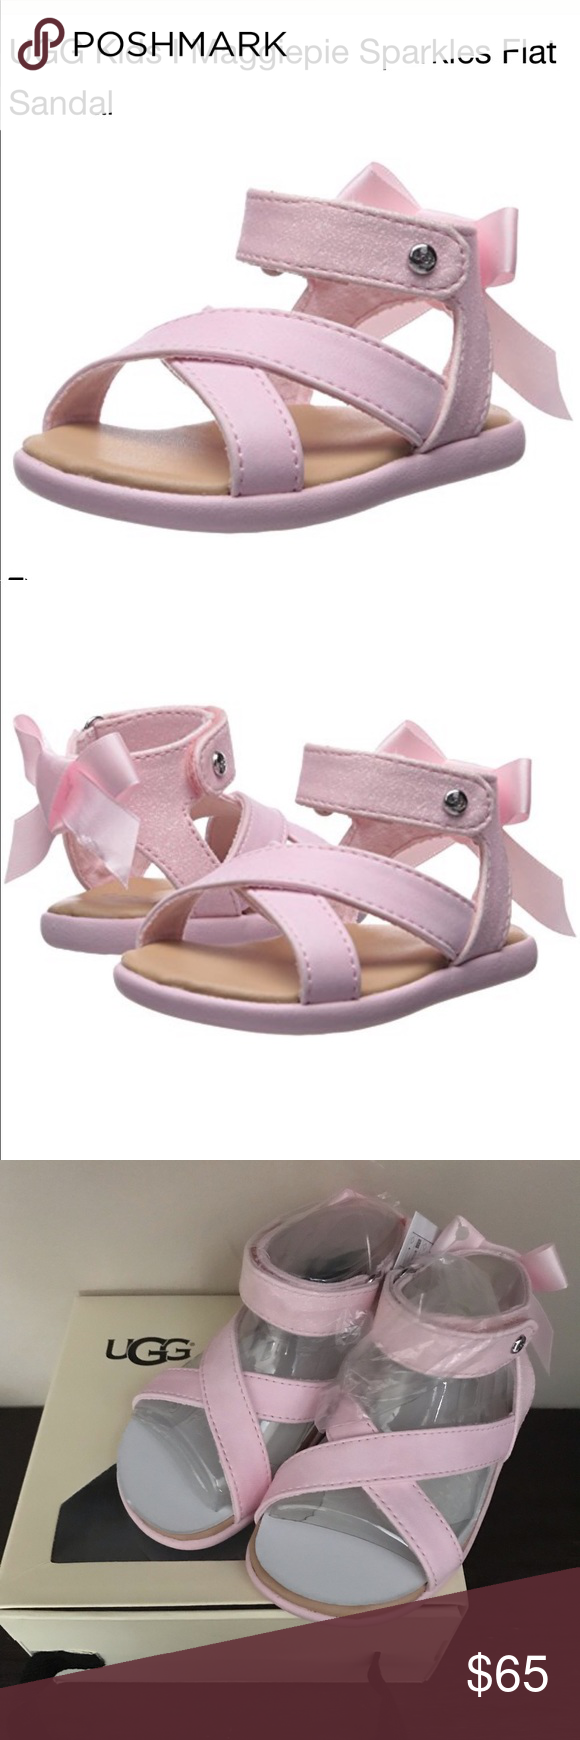 ce358b295de UGG Maggiepie Sparkles Pink Sandals Adorable pink strappy girls ...